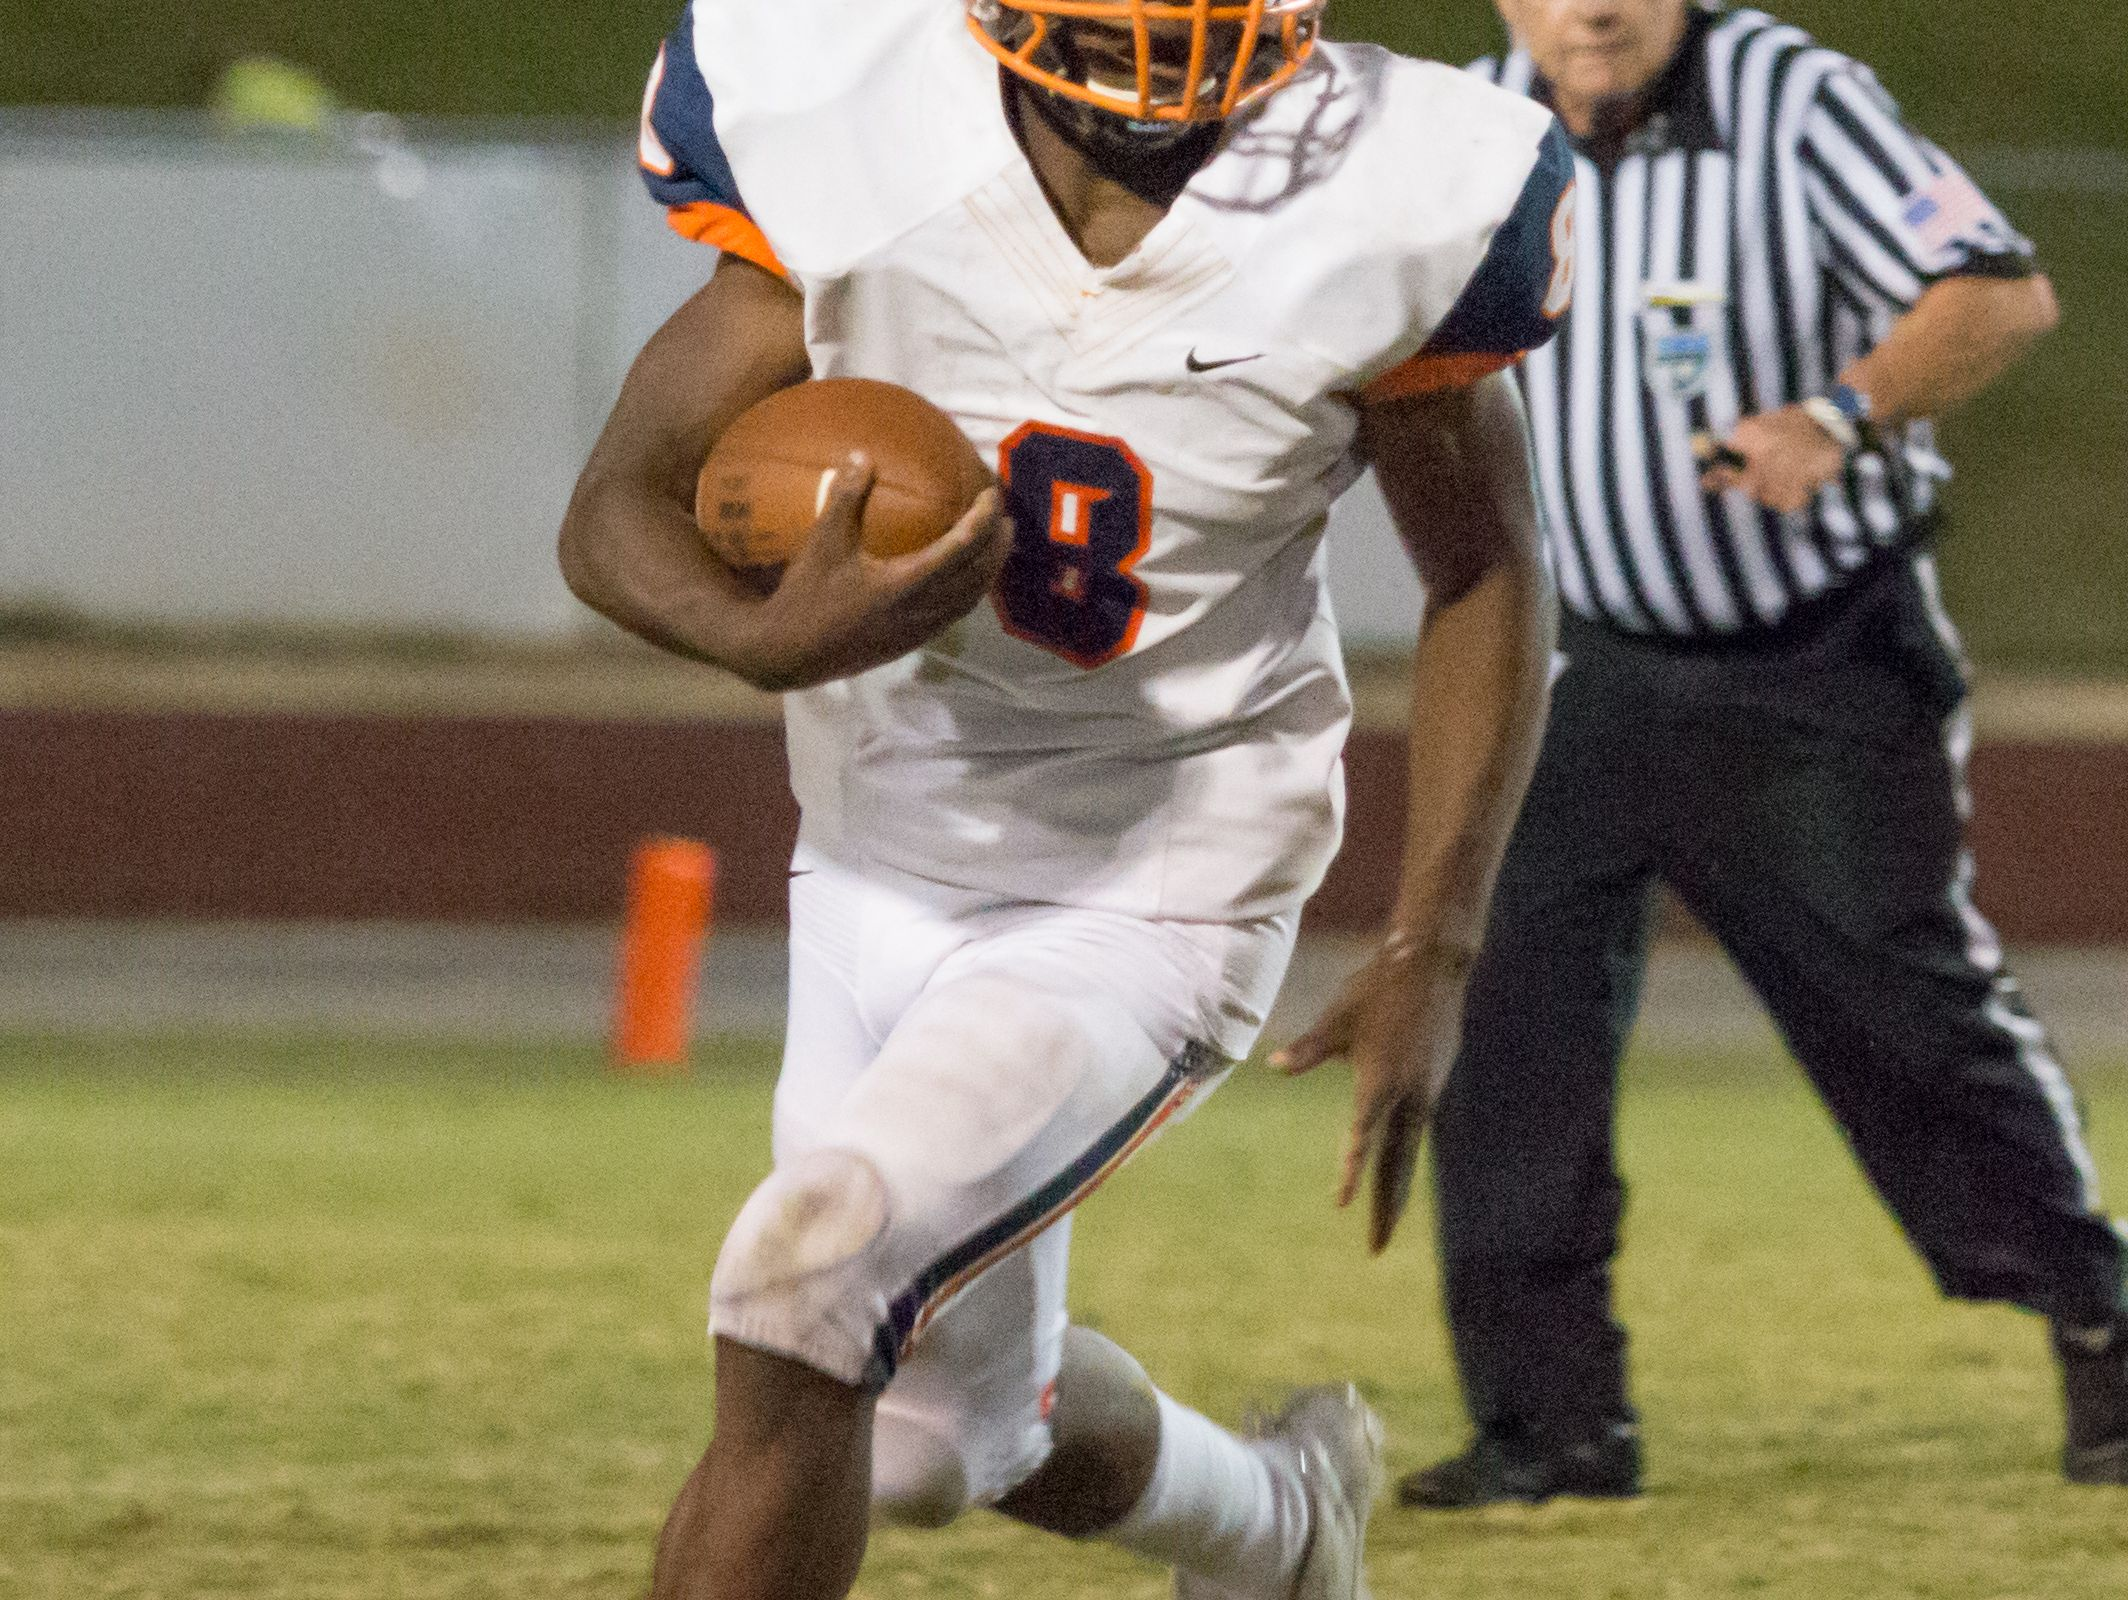 Escambia running back Queven Dosunma (8) looks up field after taking a handoff Friday night at Tate High School.